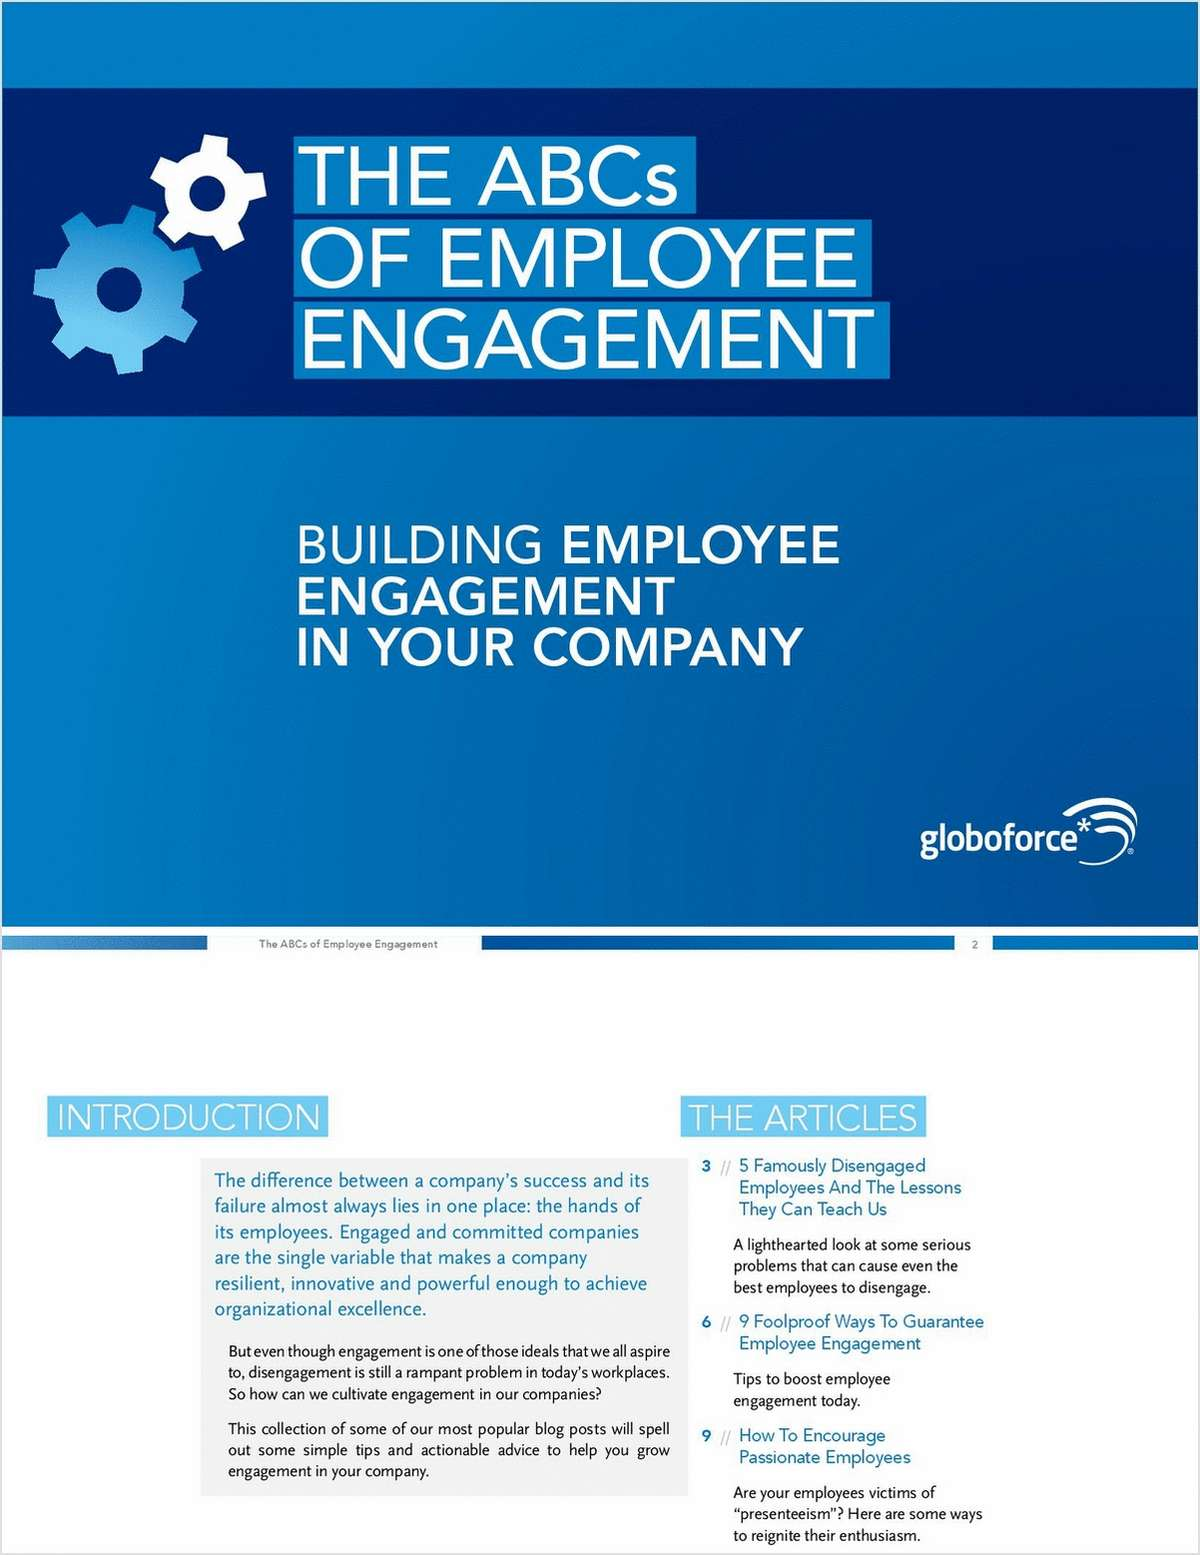 The ABCs of Employee Engagement